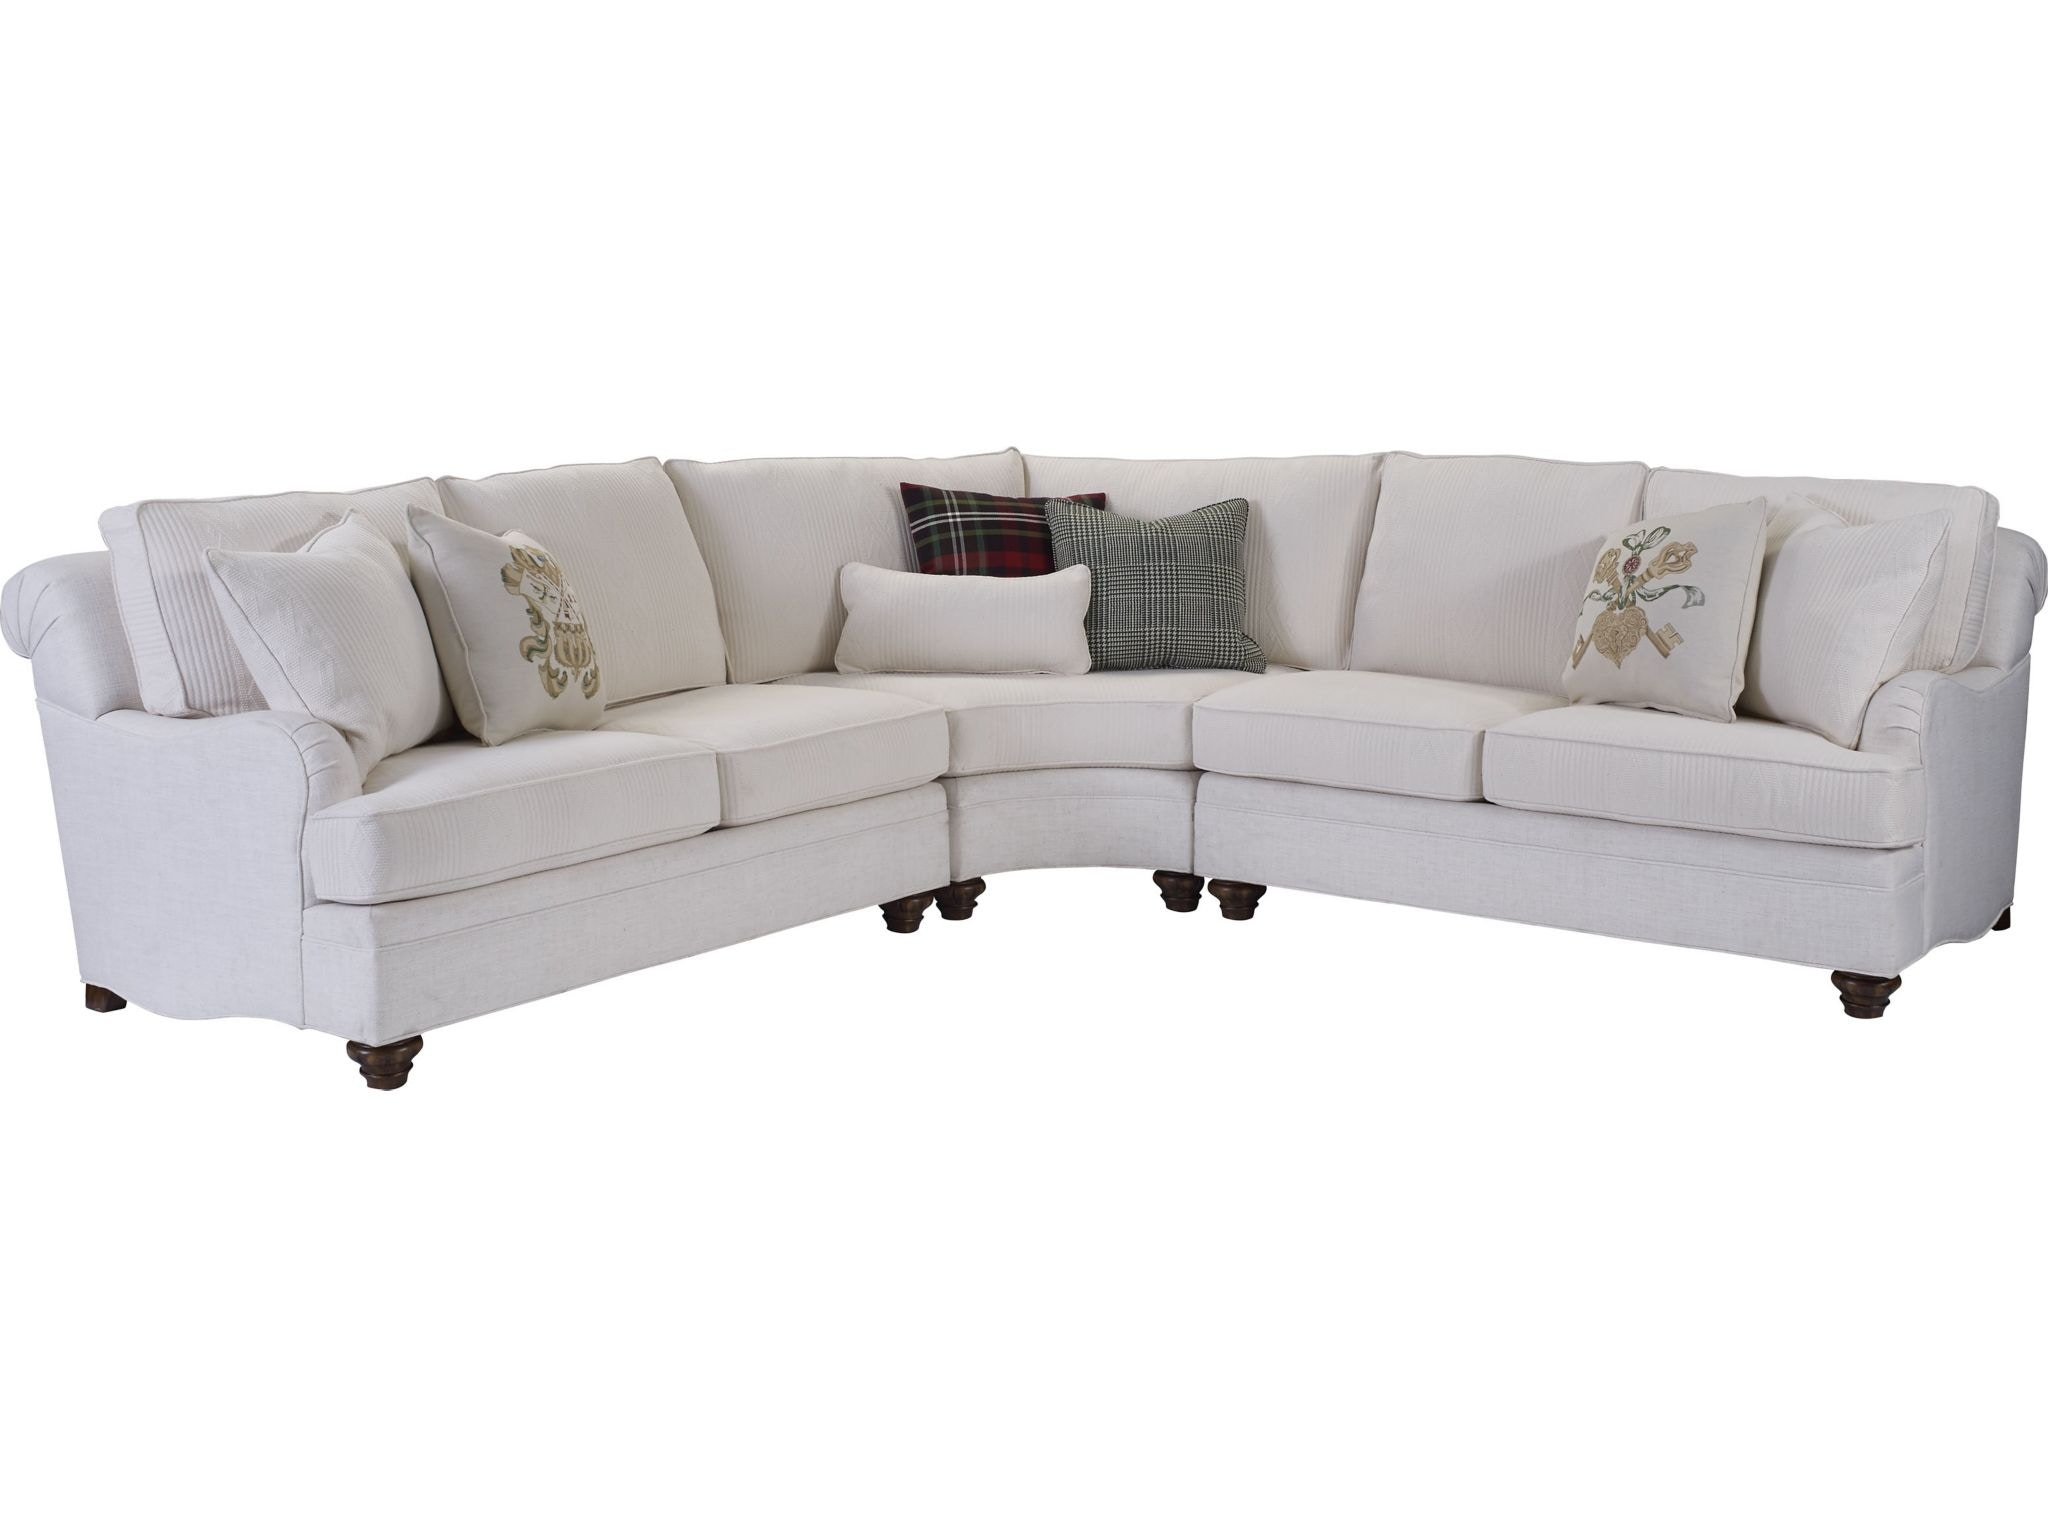 Oversized sofas deep seated sofa cheap sectionals for sale for Deep sofas for sale